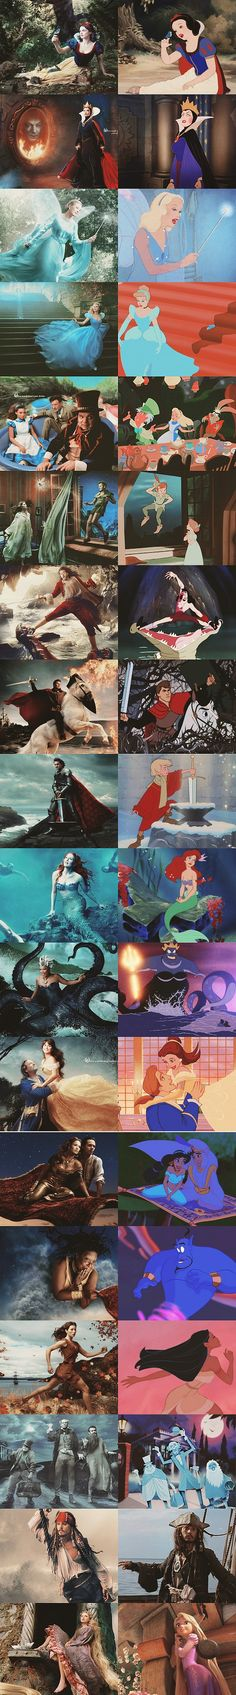 Annie Leibovitz's Disney Dream Portraits I like how Johnny Deep is playing captain jack sparrow